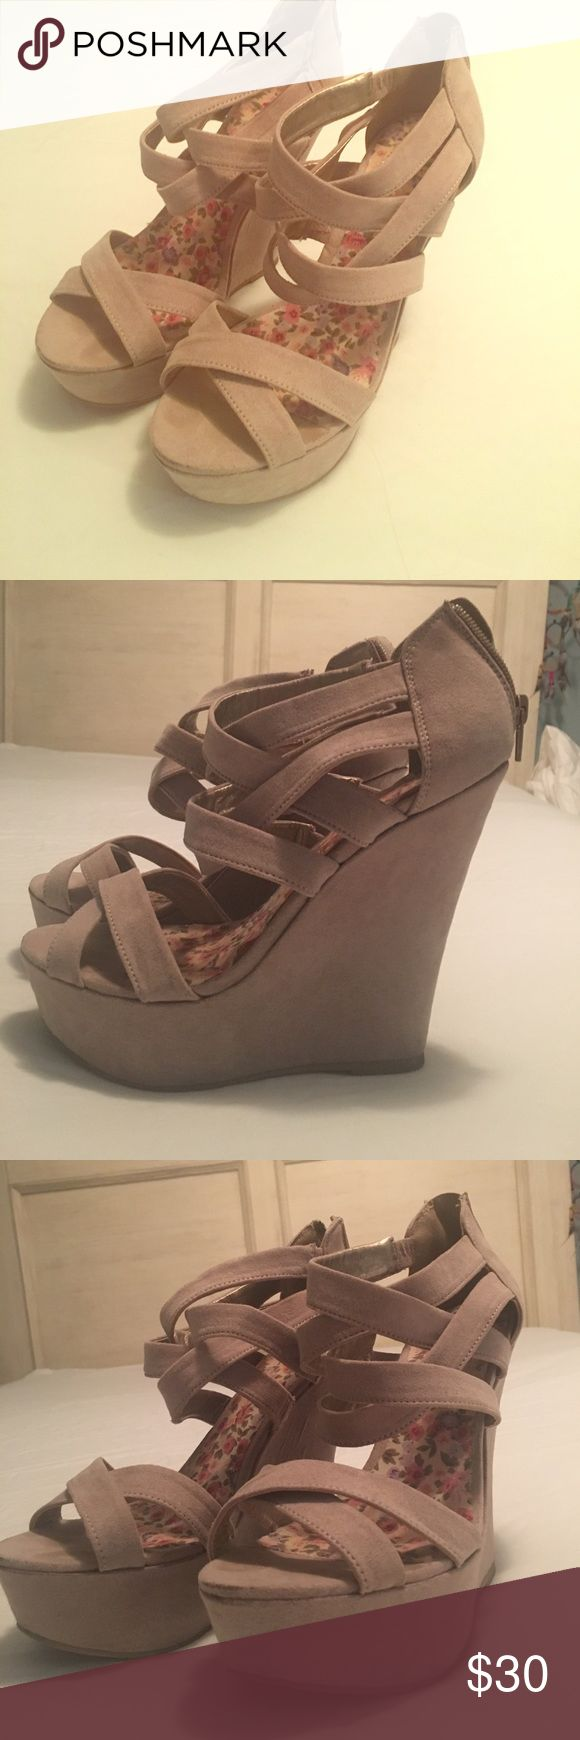 4 inch wedge sandals Cream/nude colored sands wedges, size 7.5, 4inch heel height with 1inch platform Qupid Shoes Wedges